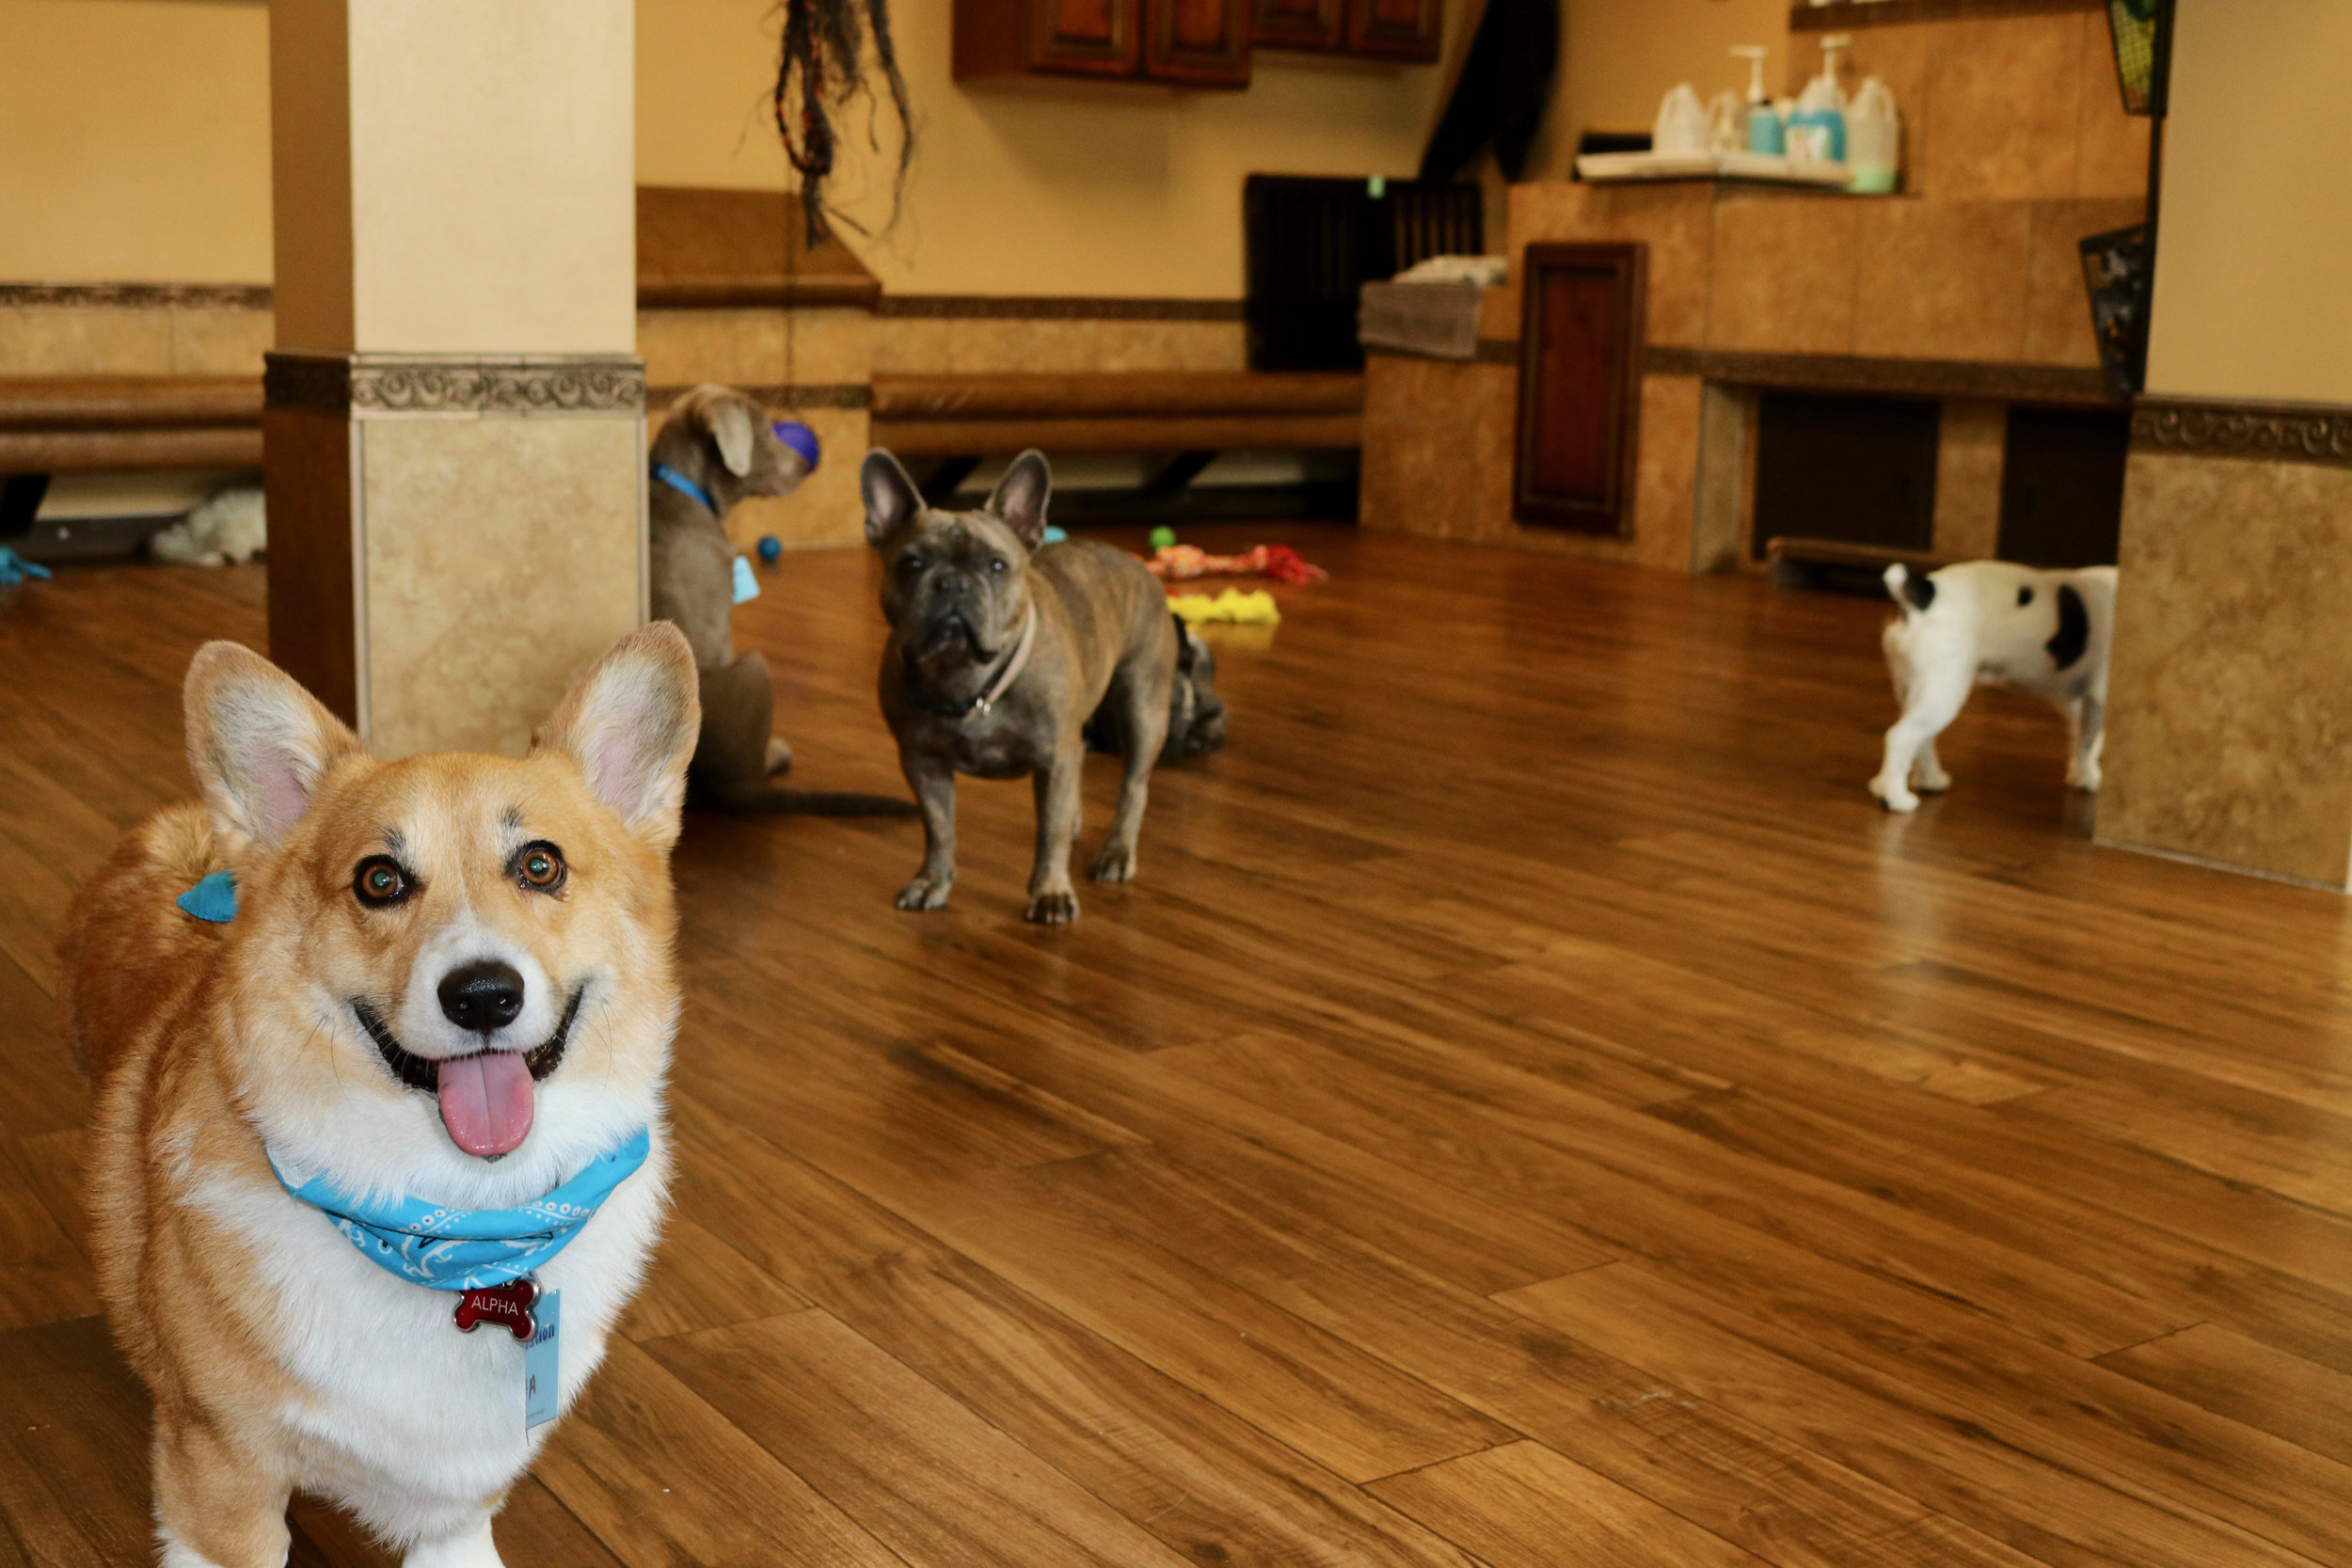 small-dogs-daycare-dog-boarding-pool-cageless6.jpg